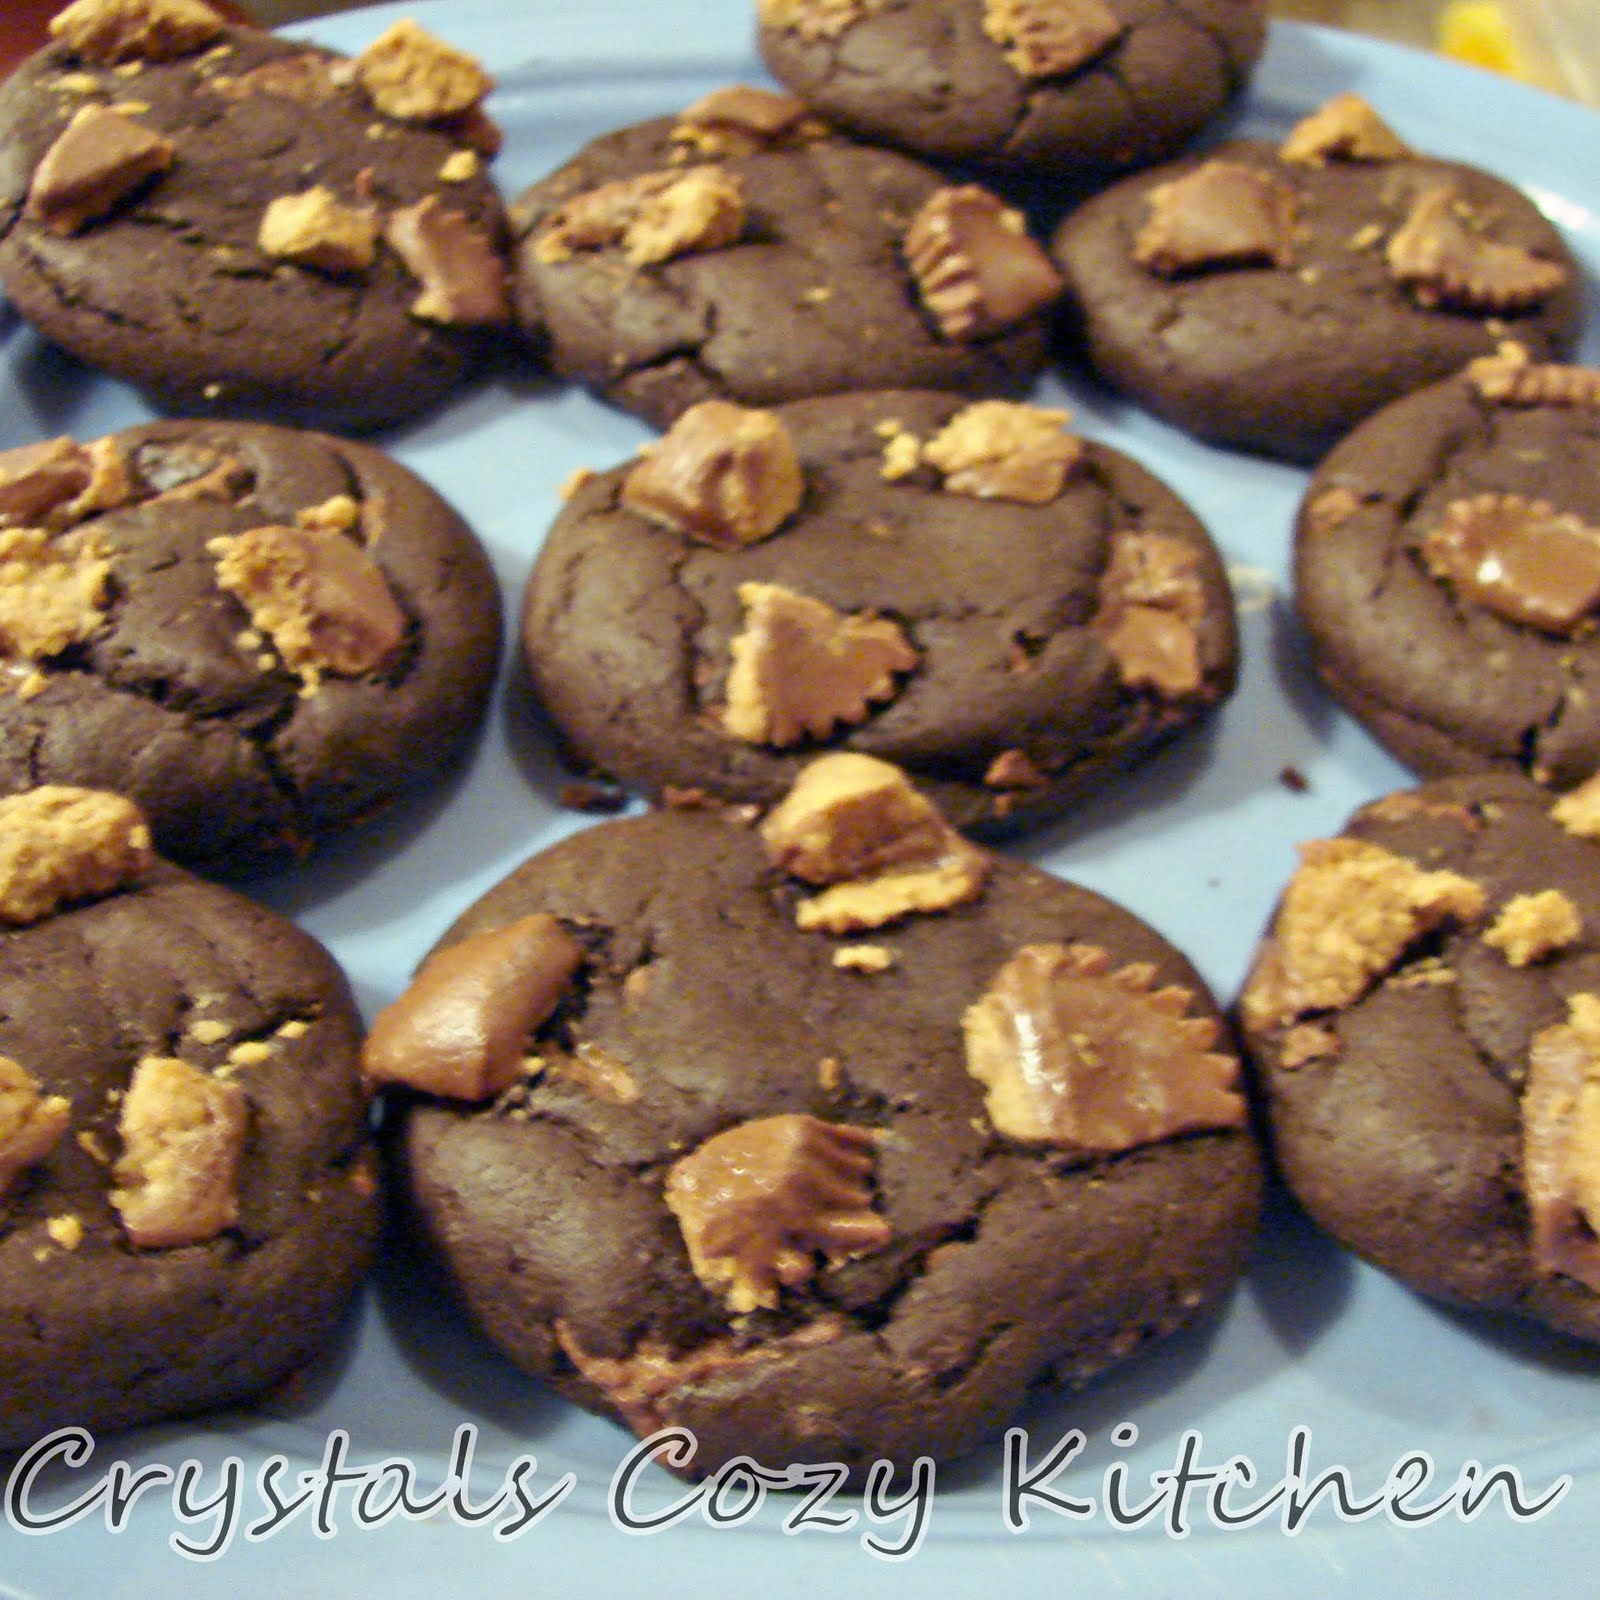 Crystal's Cozy Kitchen: Peanut Butter Cup Cookies